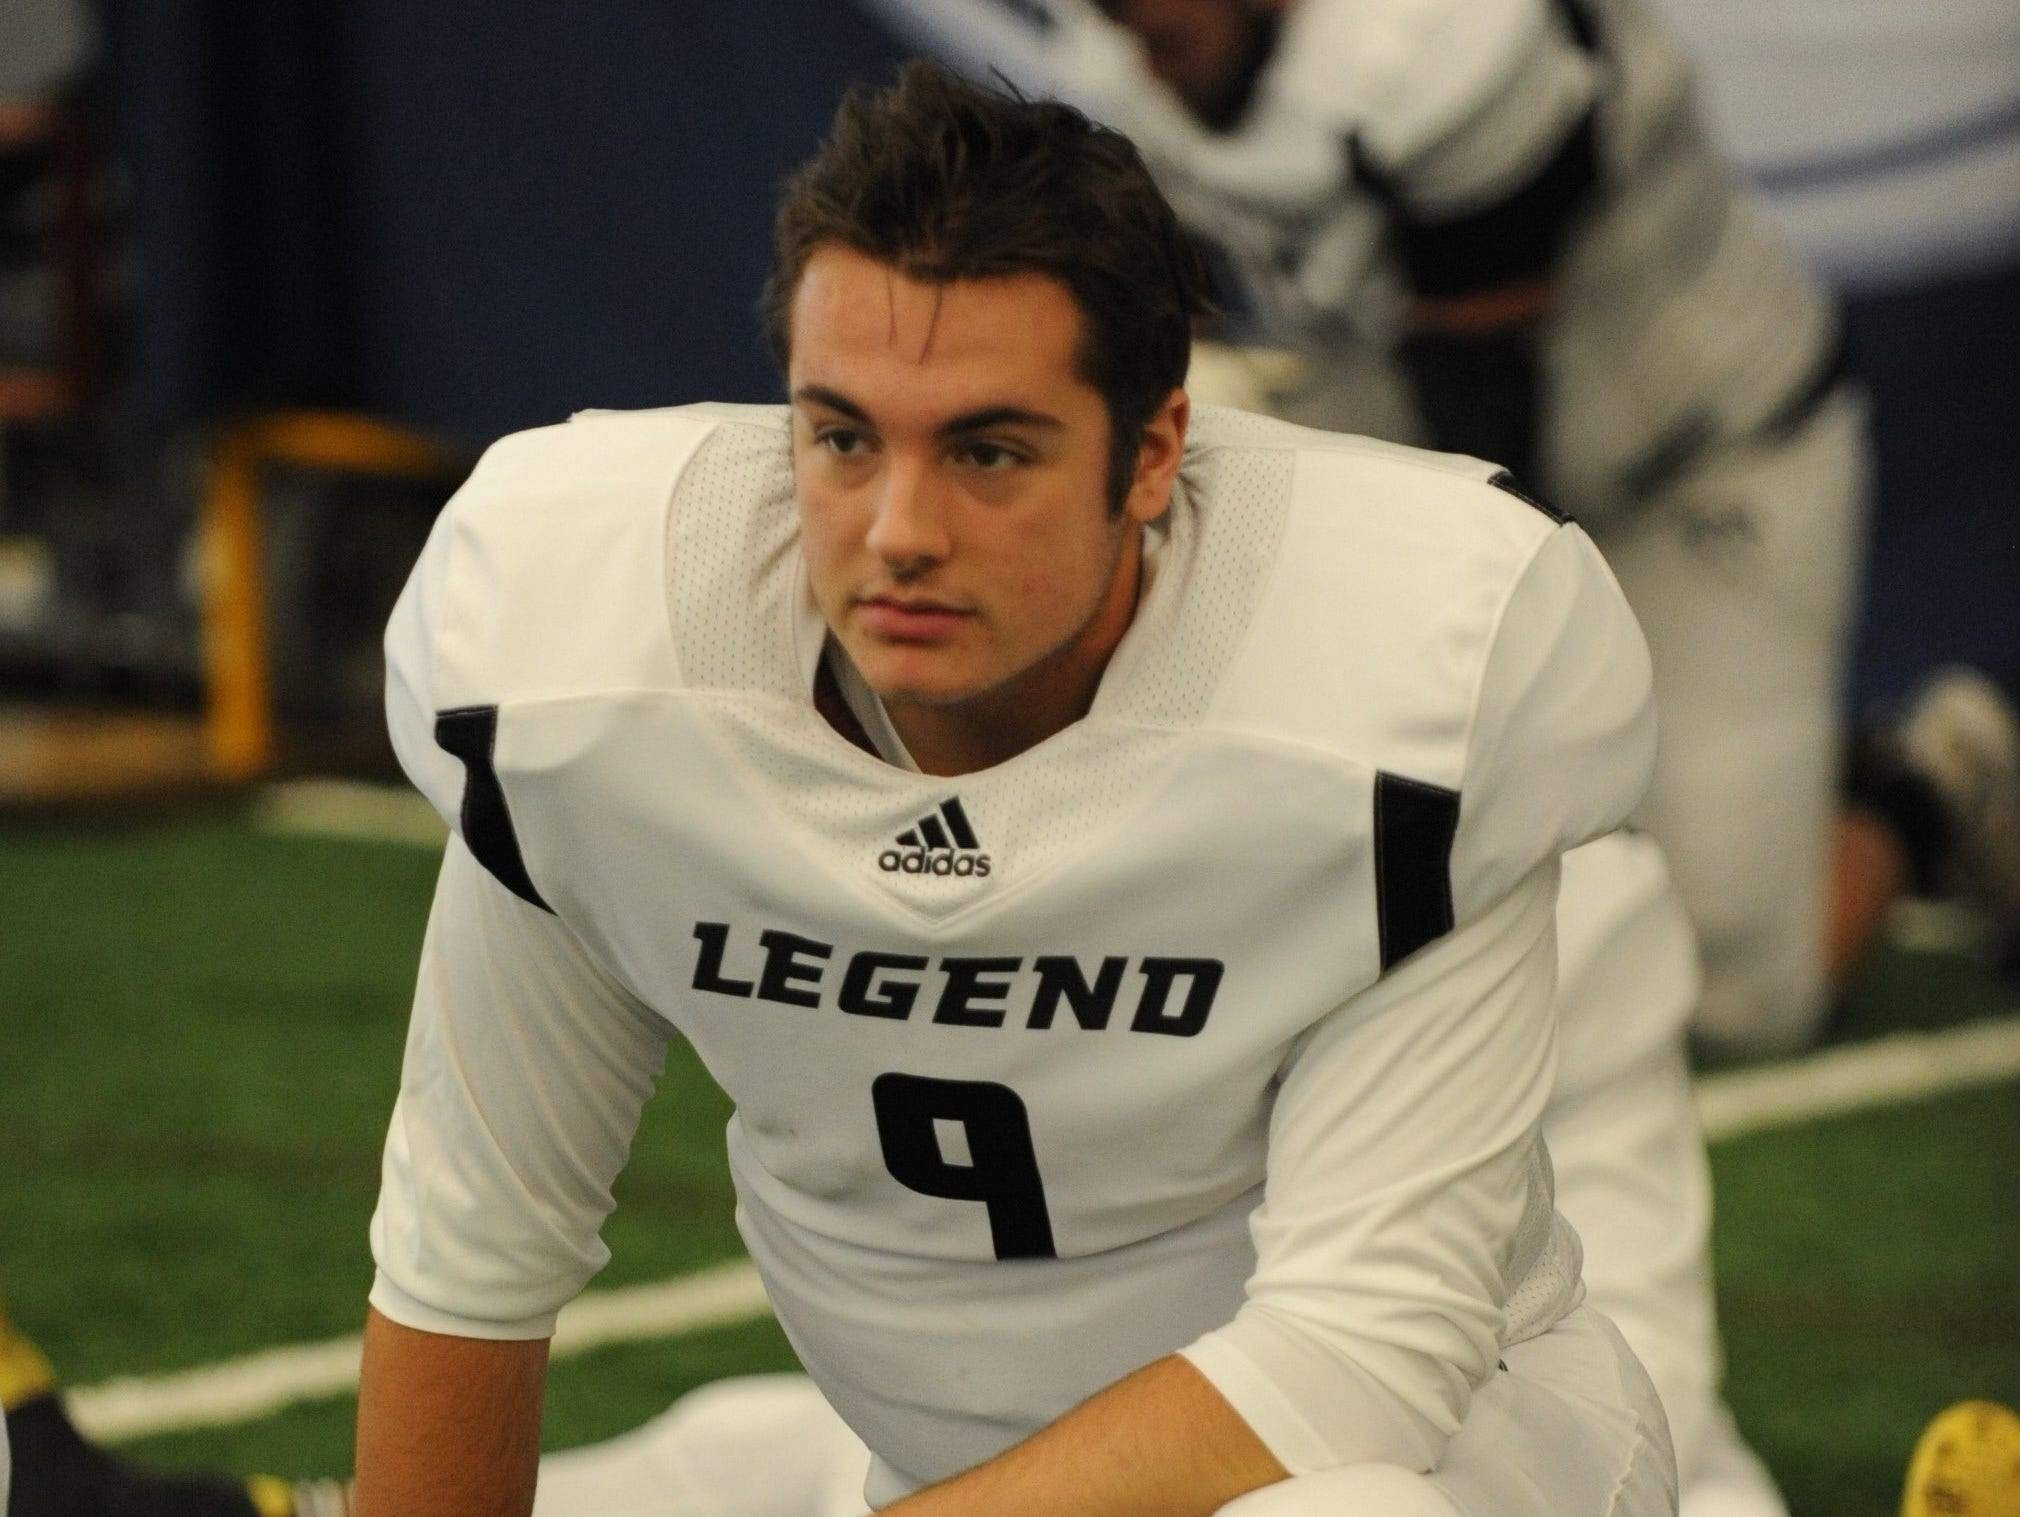 Team Legends quarterback Matt Hornyak, from Howell High School.